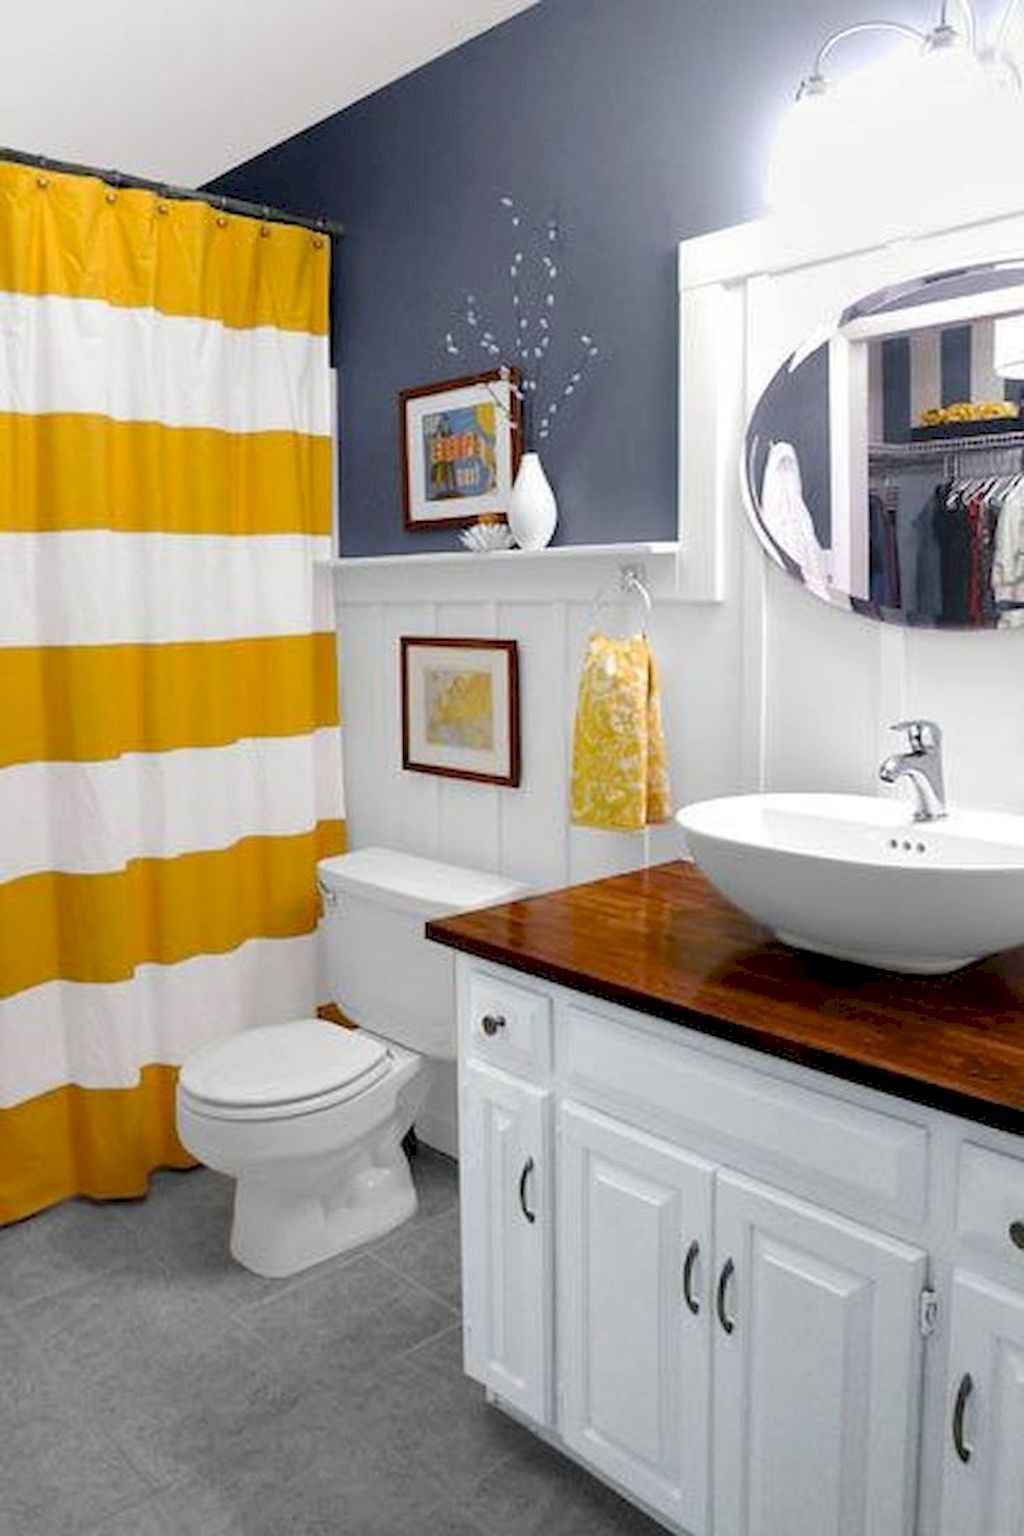 55 cool and relax bathroom design ideas (32)